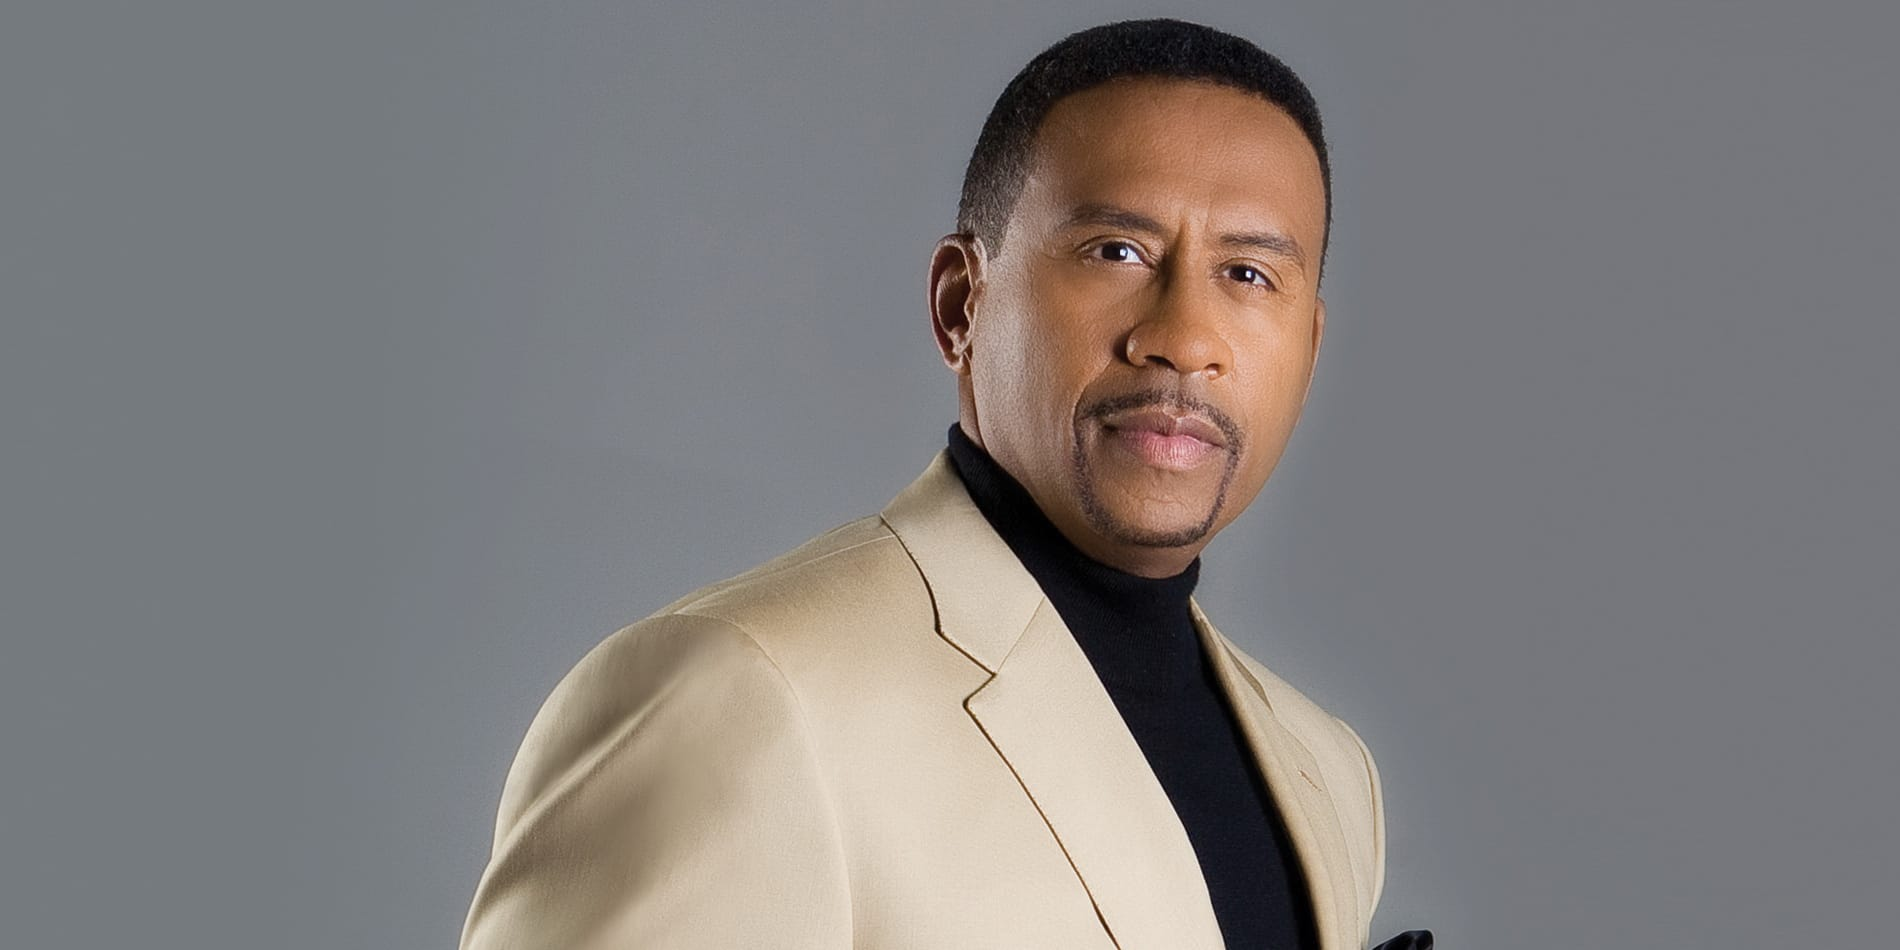 baisden dating The nook book (ebook) of the men cry in the dark by michael baisden at barnes & noble free shipping on $25 or more  interracial dating,.